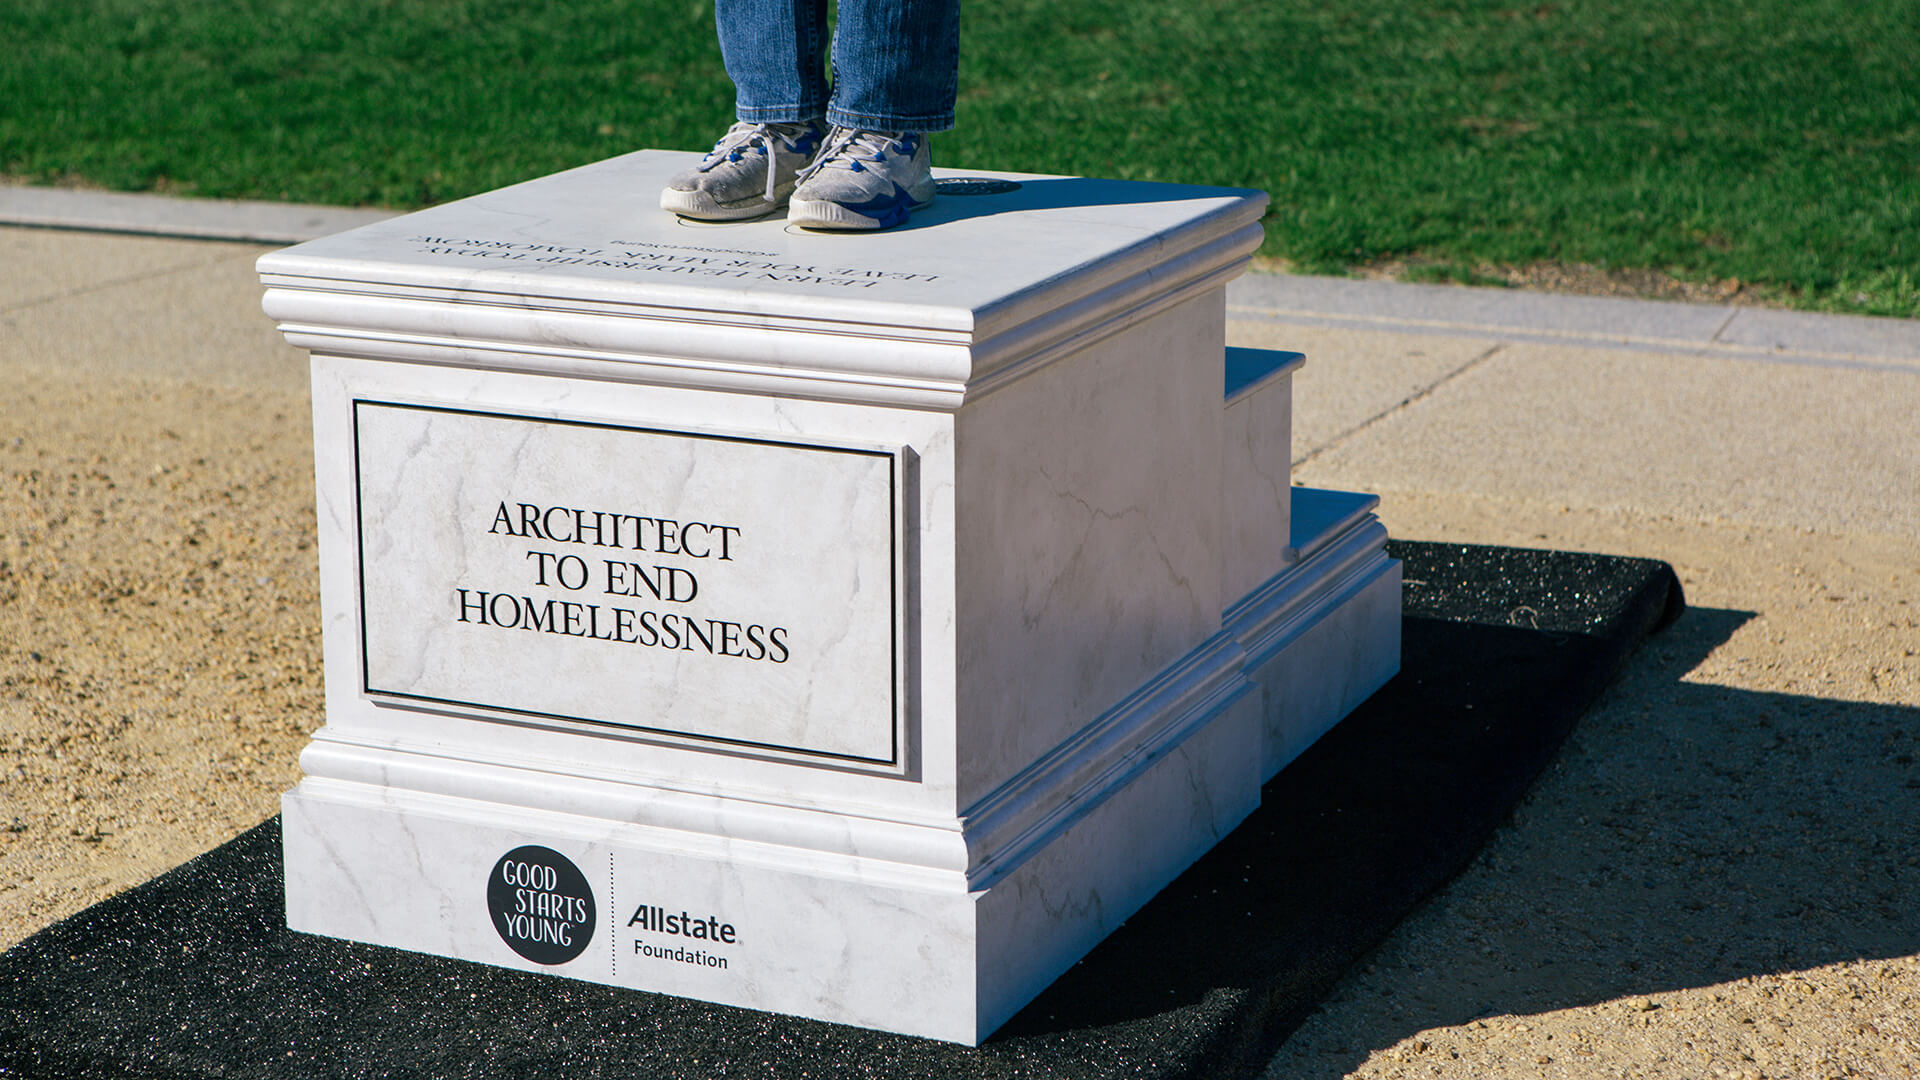 Good Starts Young Pedestals - Architect to End Homelessness